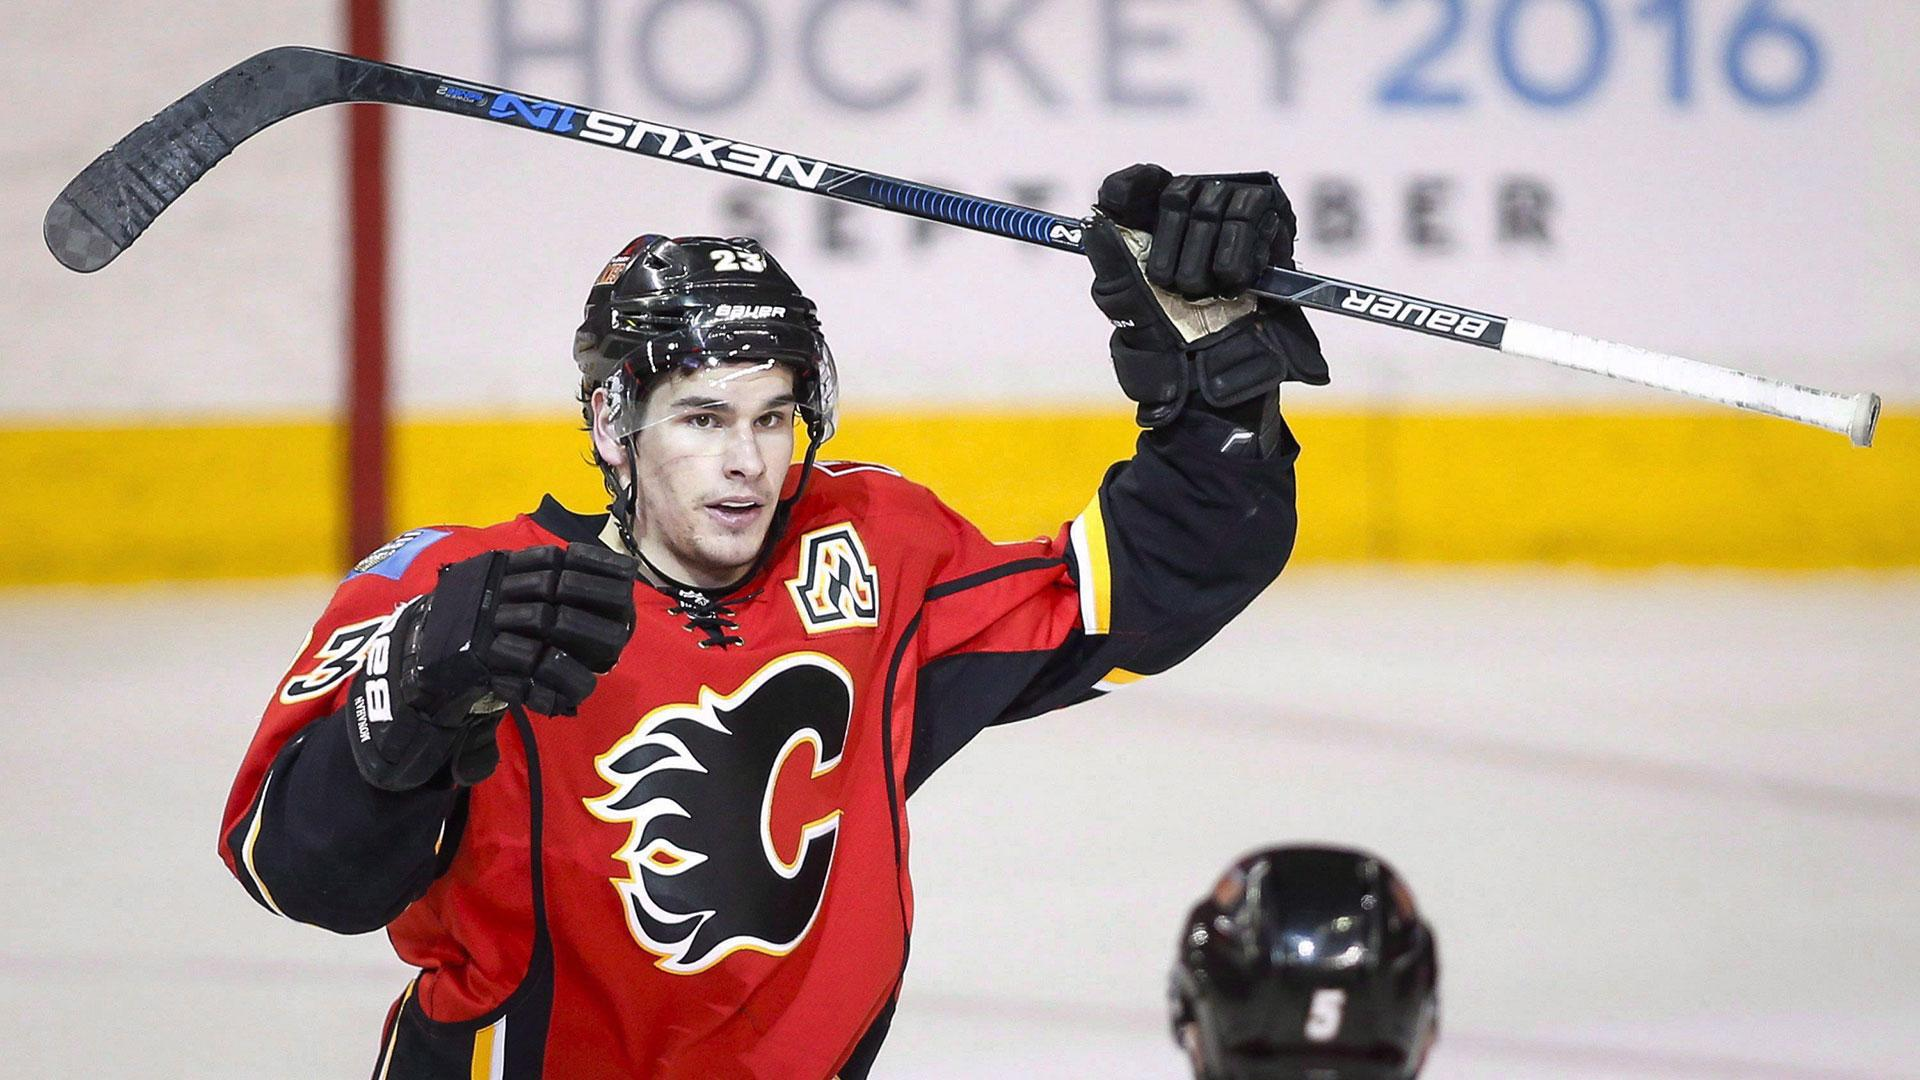 Gaudreau and Monahan: Calgary's opposite yet dynamic duo